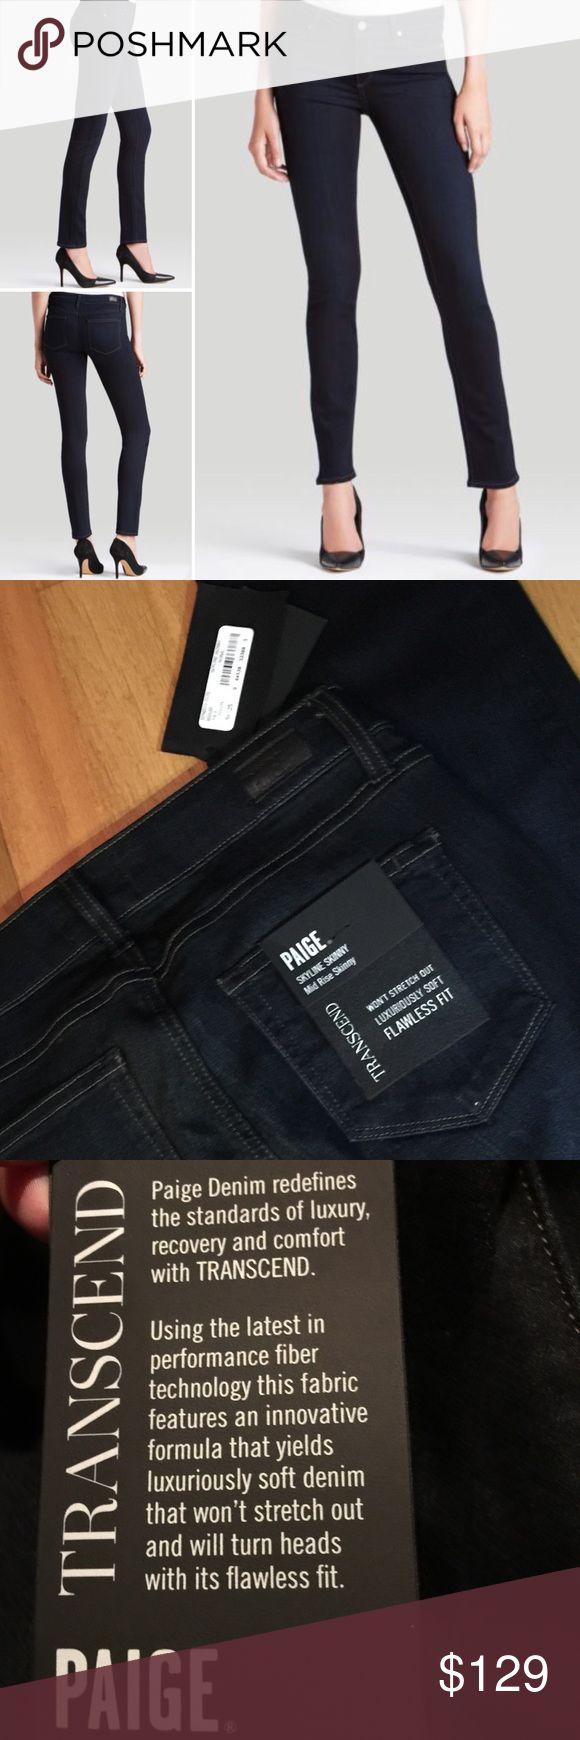 NWT Paige Skyline Skinny Denim Brand new with tags  These are so soft! If only they were my size! ❤️❤️ Being sold online right now at Nordstrom for $179. Paige Jeans Pants Skinny